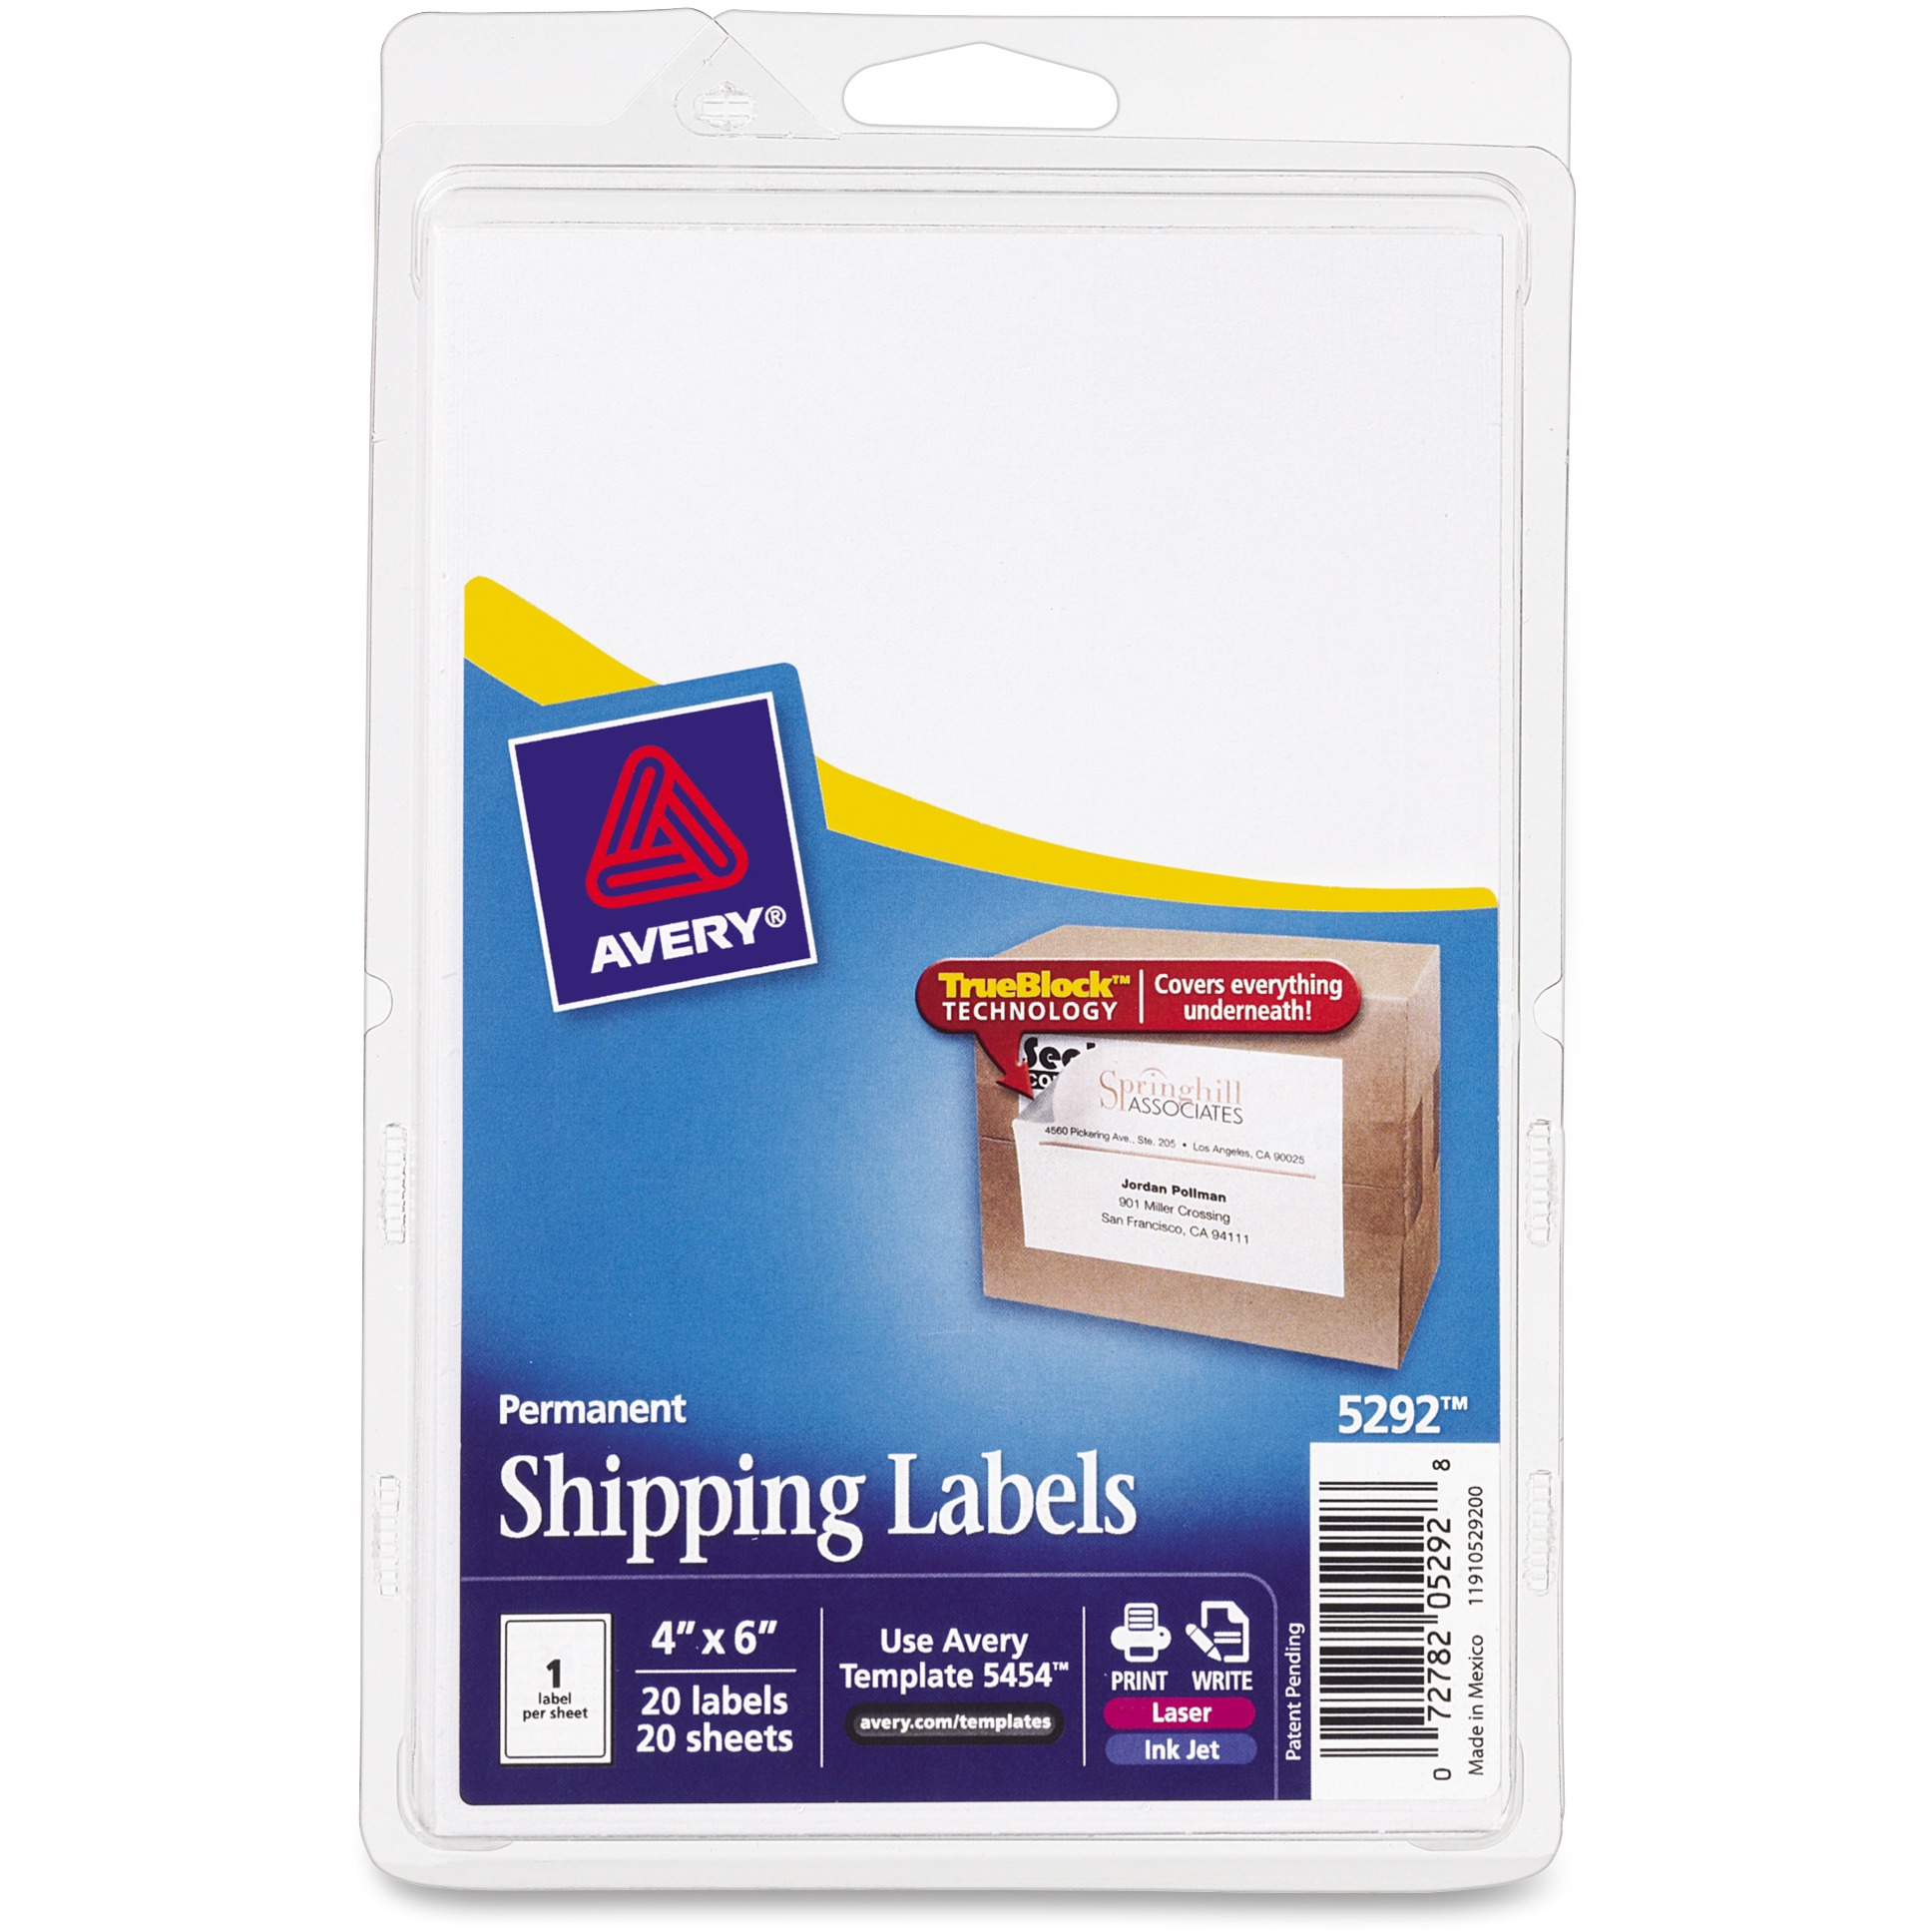 Avery Trueblock Technology Shipping Labels